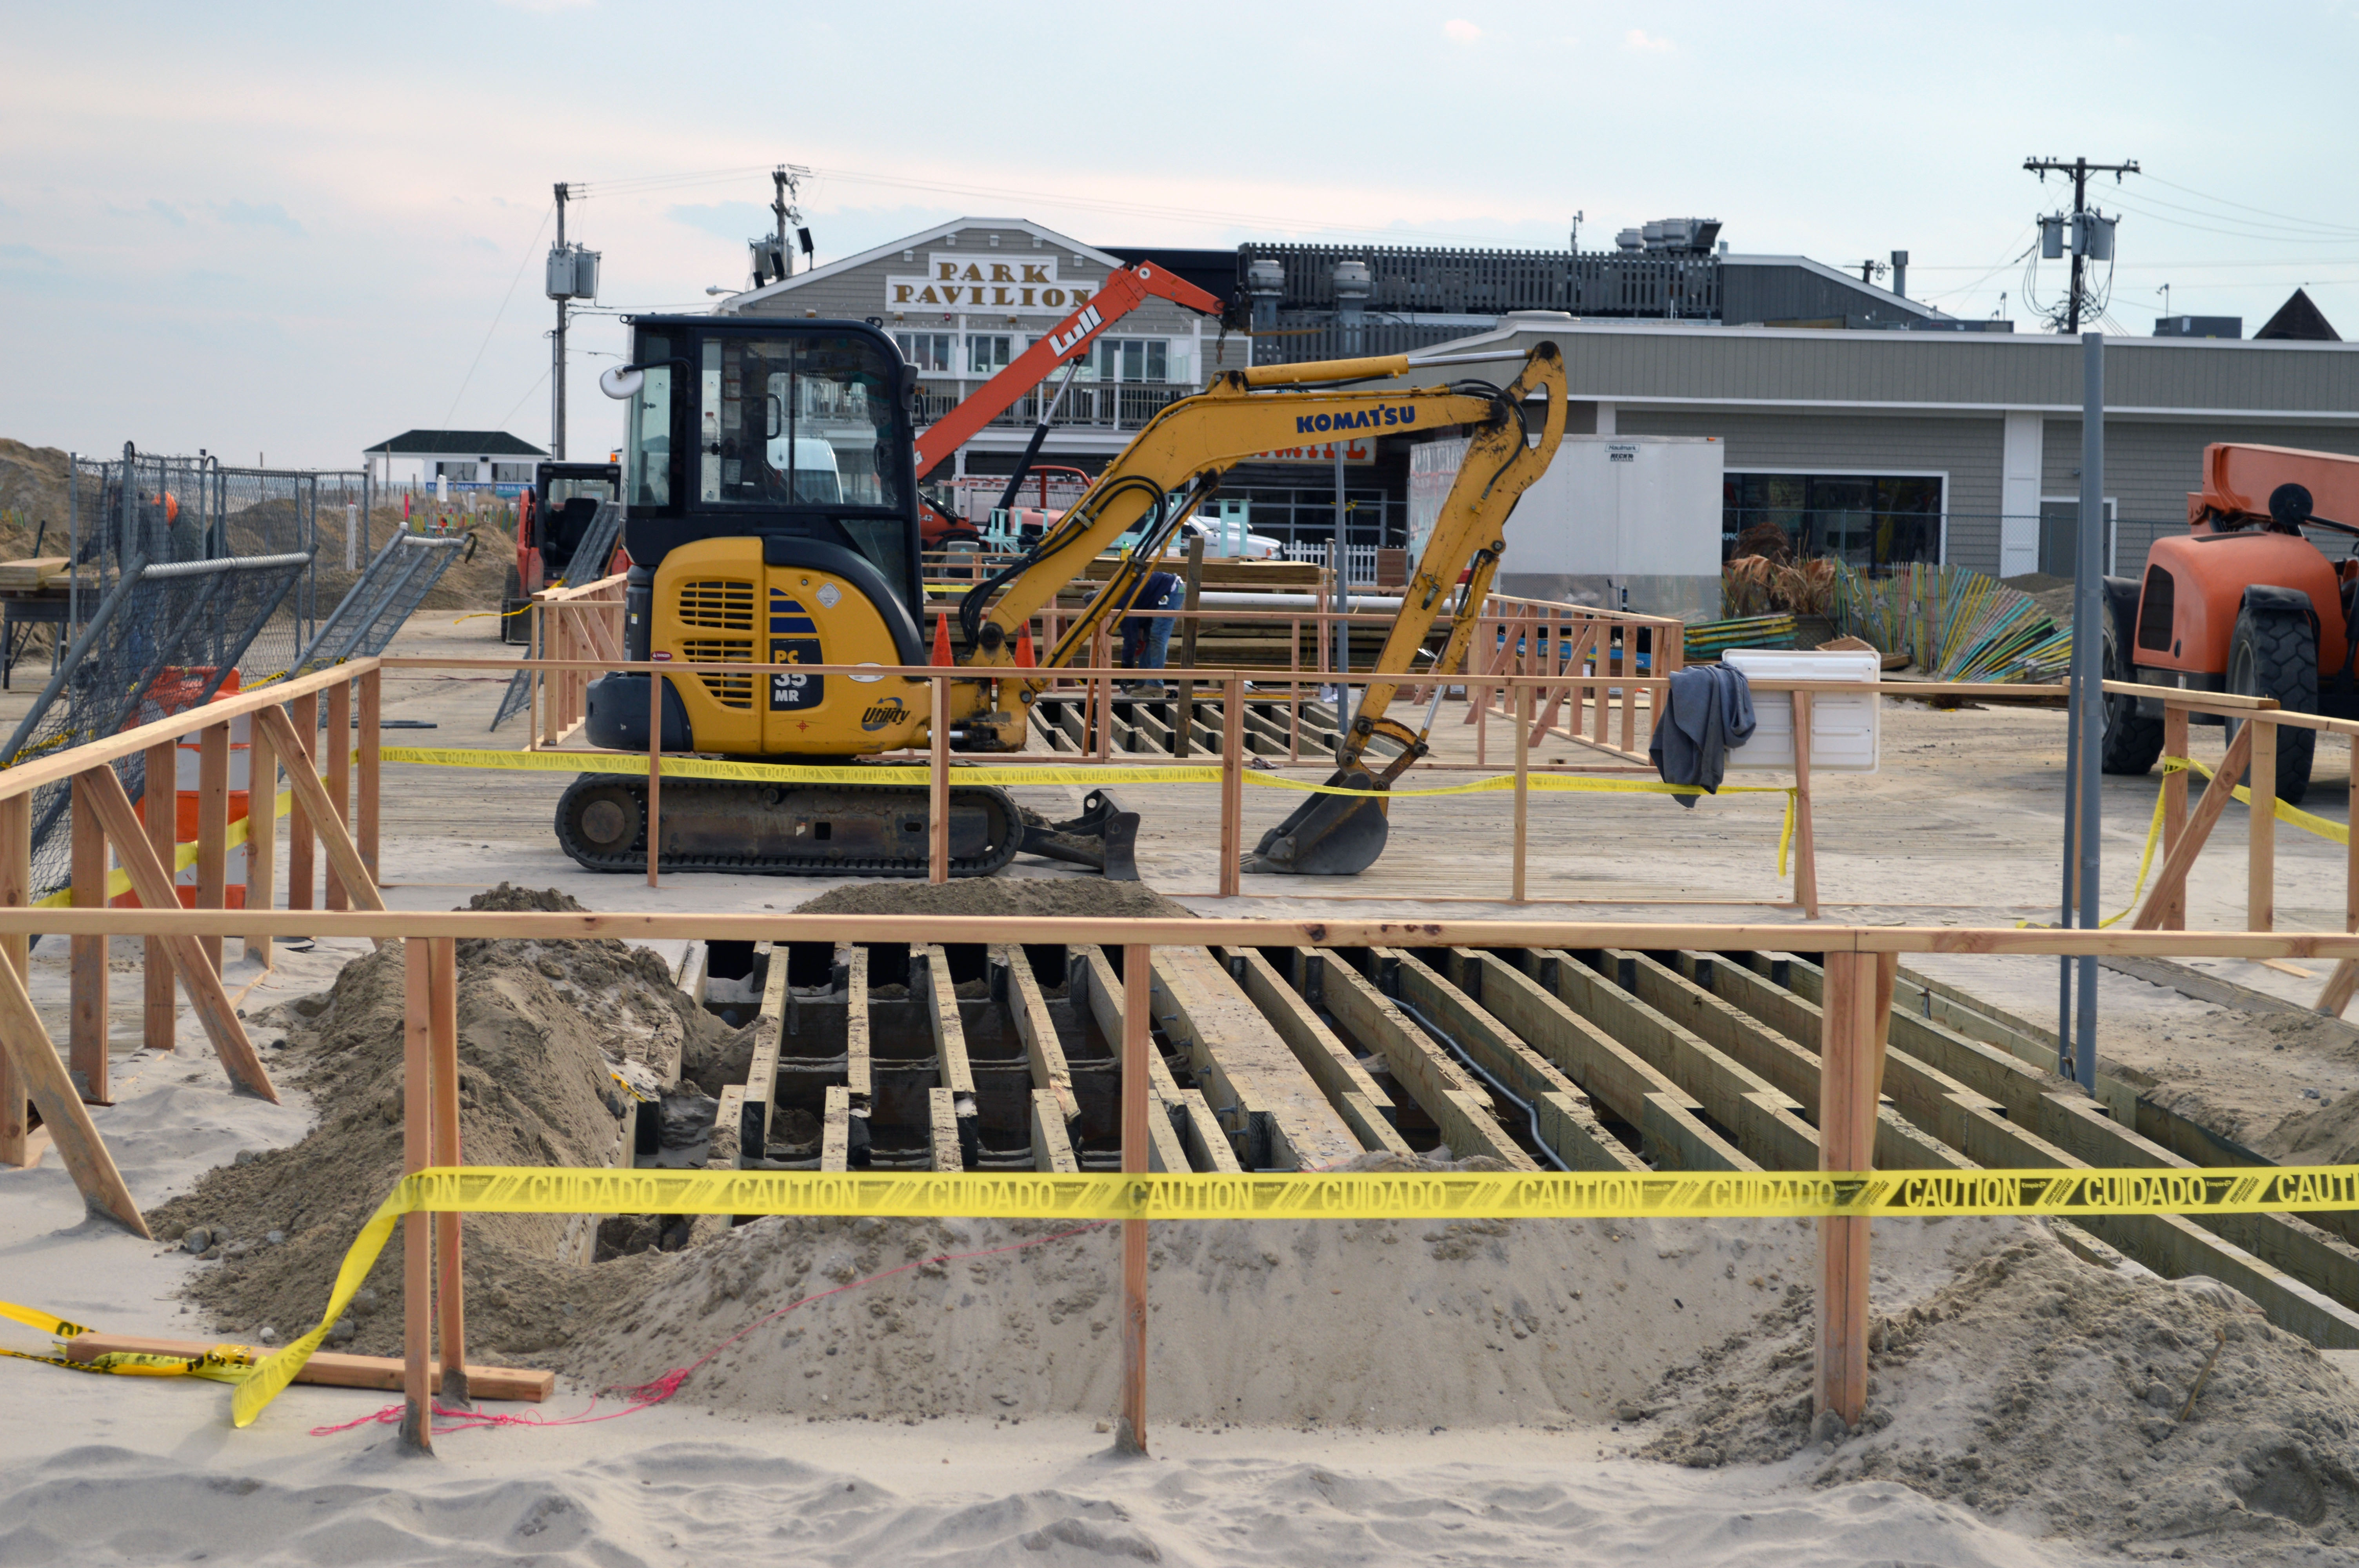 Development on the Seaside Heights and Seaside Park boardwalk areas destroyed by fire in 2013. (Photo: Daniel Nee)